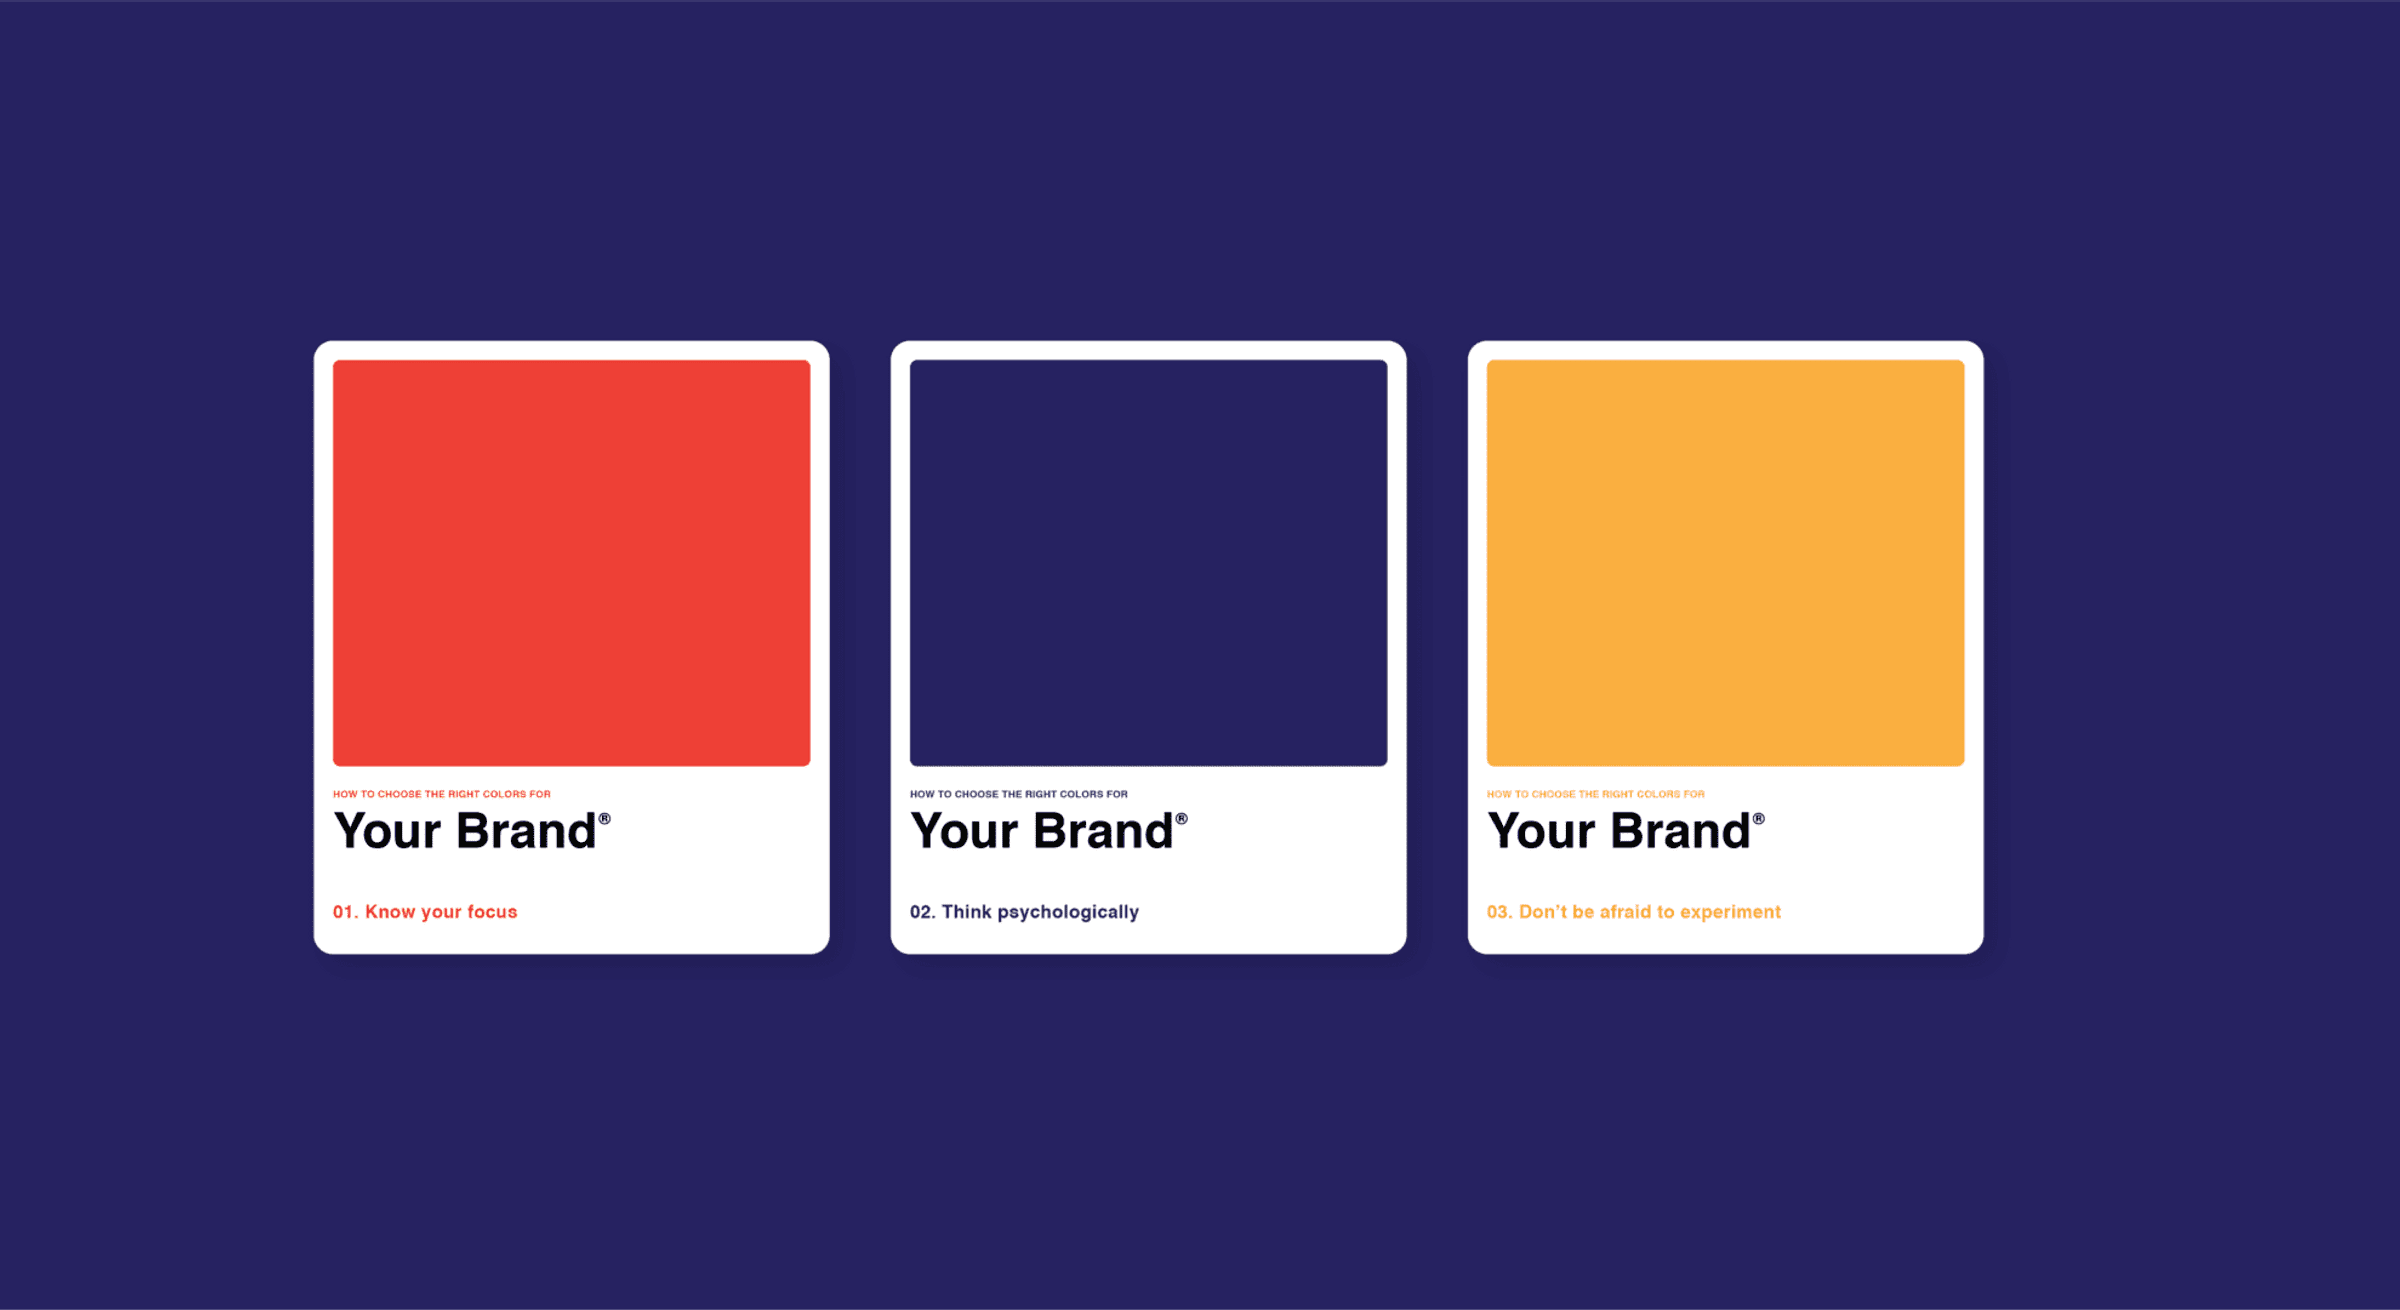 Christmas Colors Palette 2020 Canva How to choose the right colors for your brand